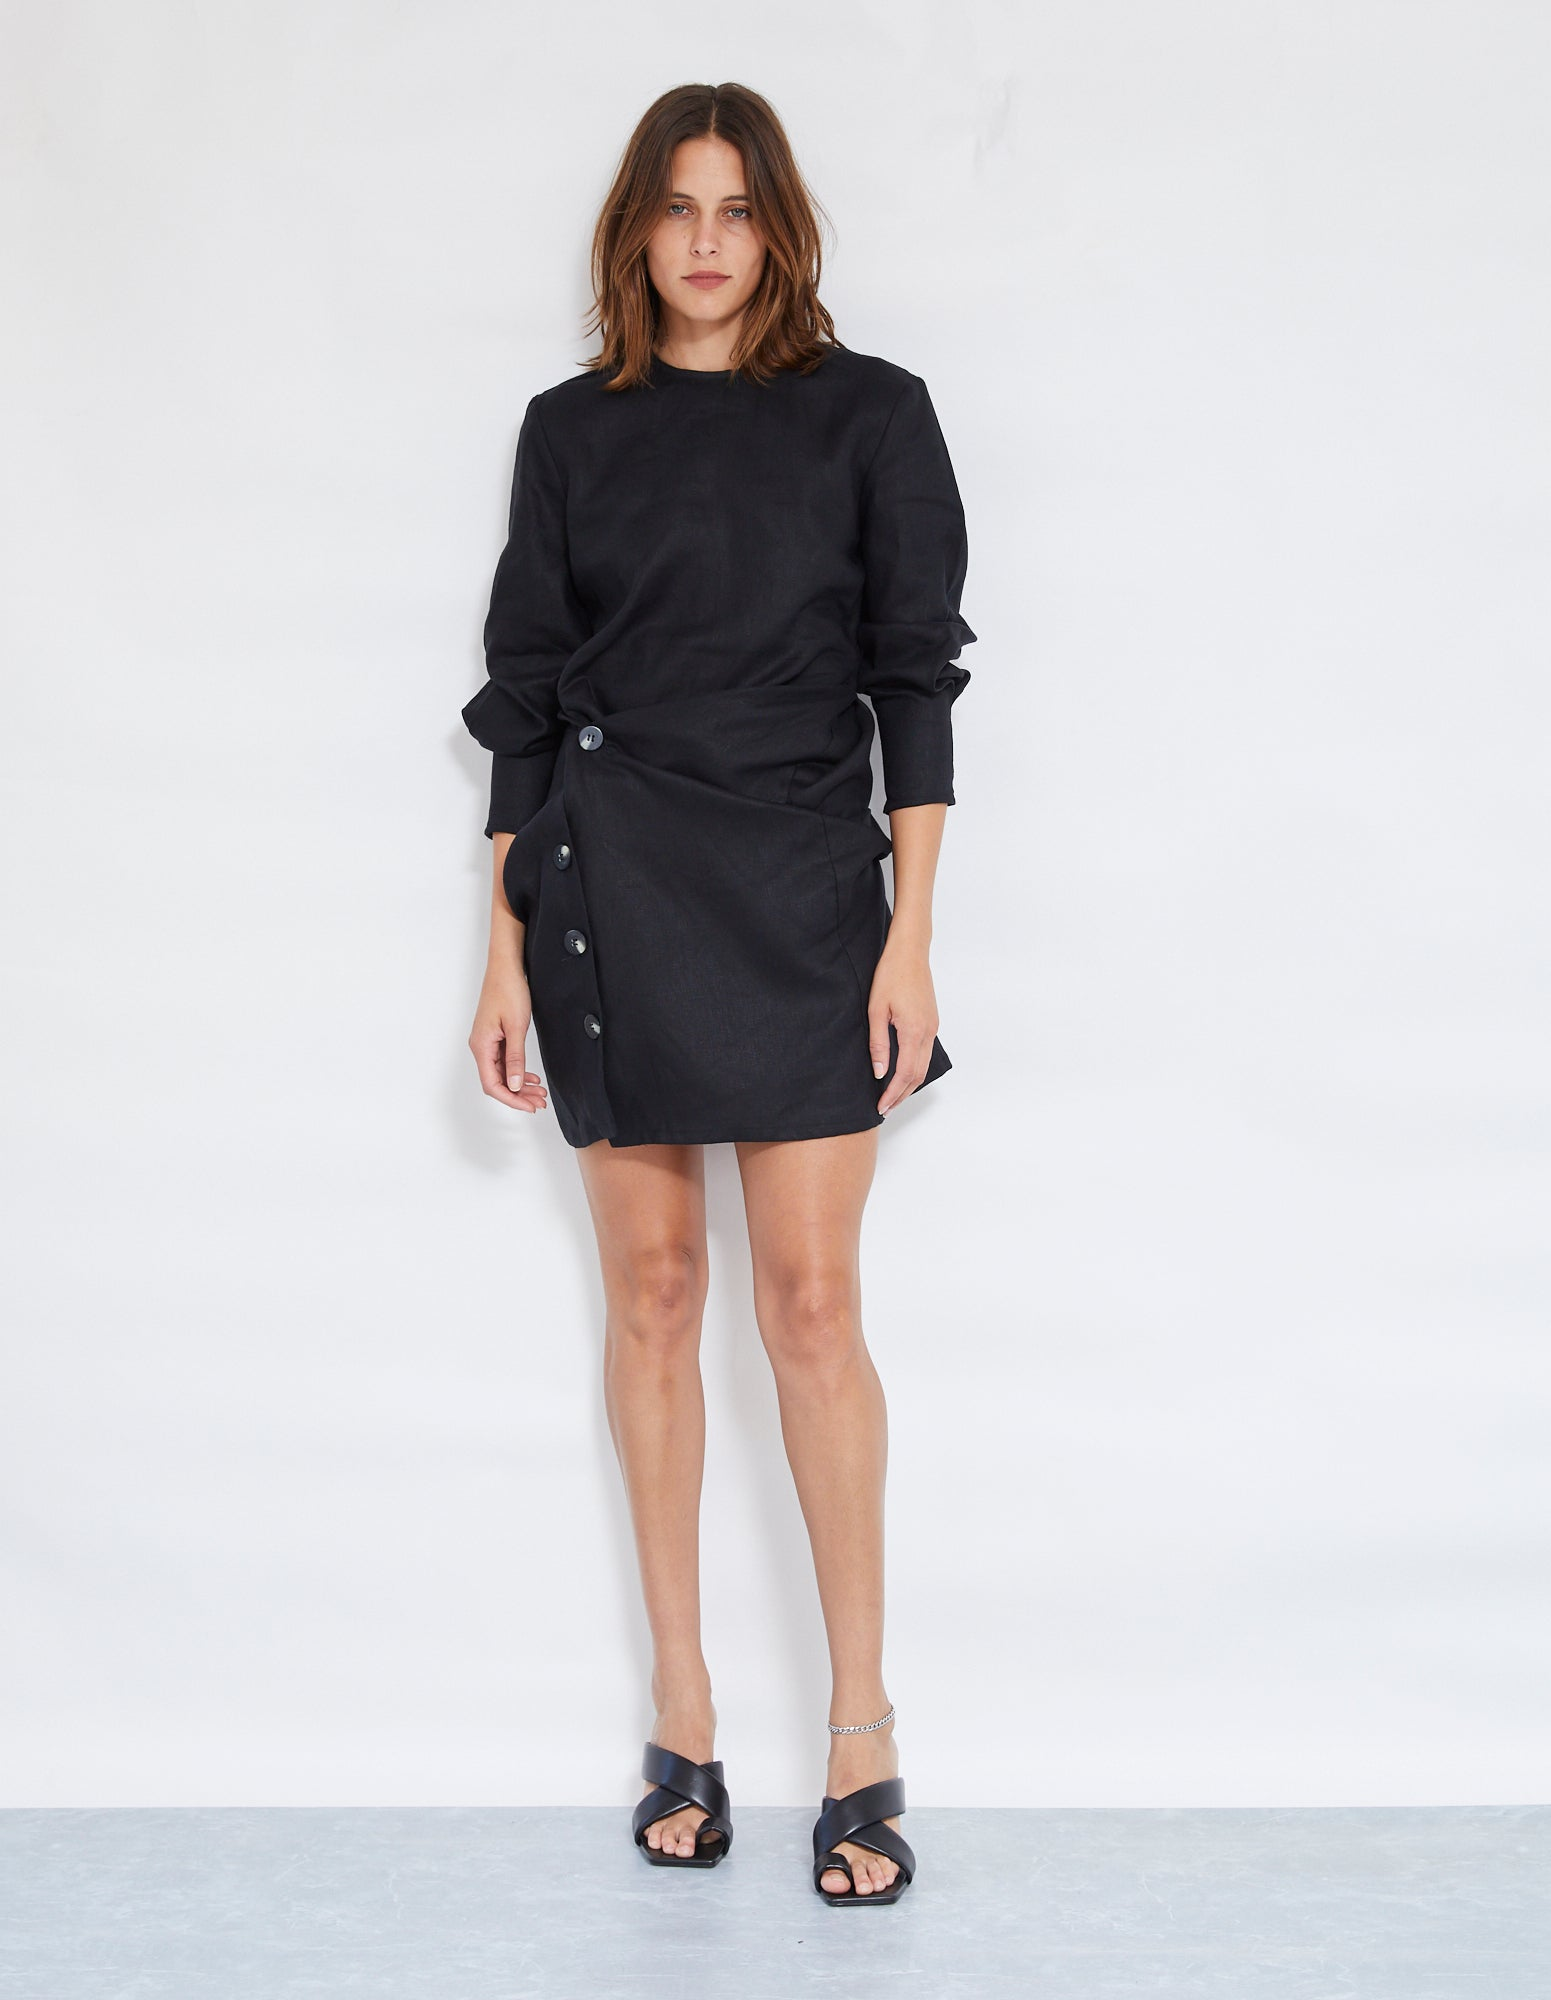 MATISSE TWIST DRESS | BLACK